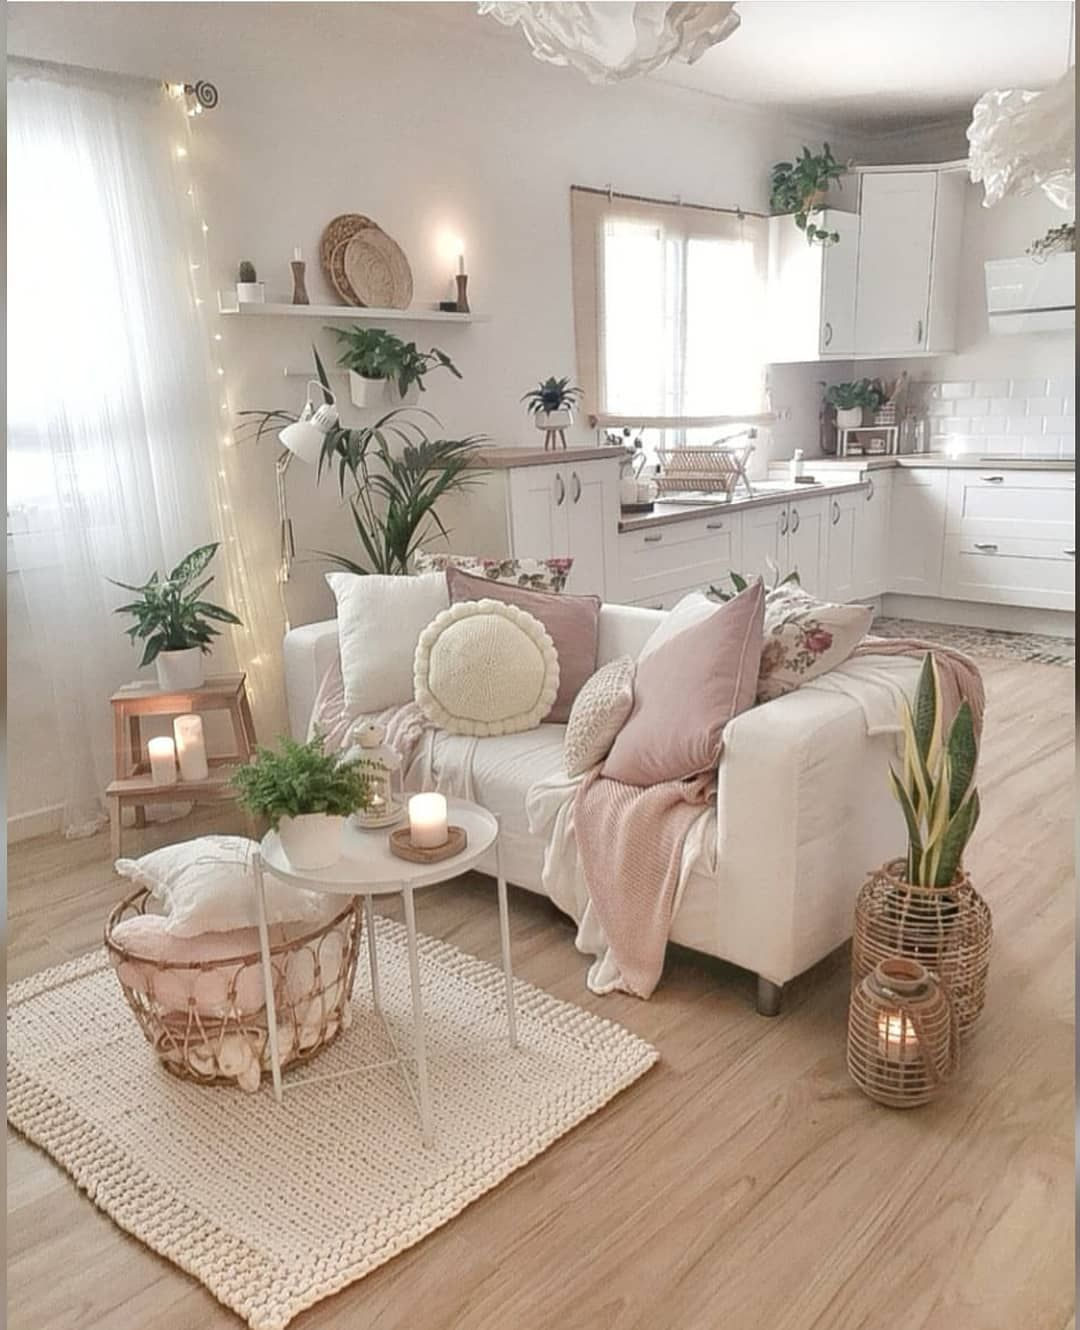 Bohemian Inspirations On Instagram The Cutest And Cozy Living Room Kitchen Scene You Really Can Boho Living Room Living Room Designs Cozy Living Rooms